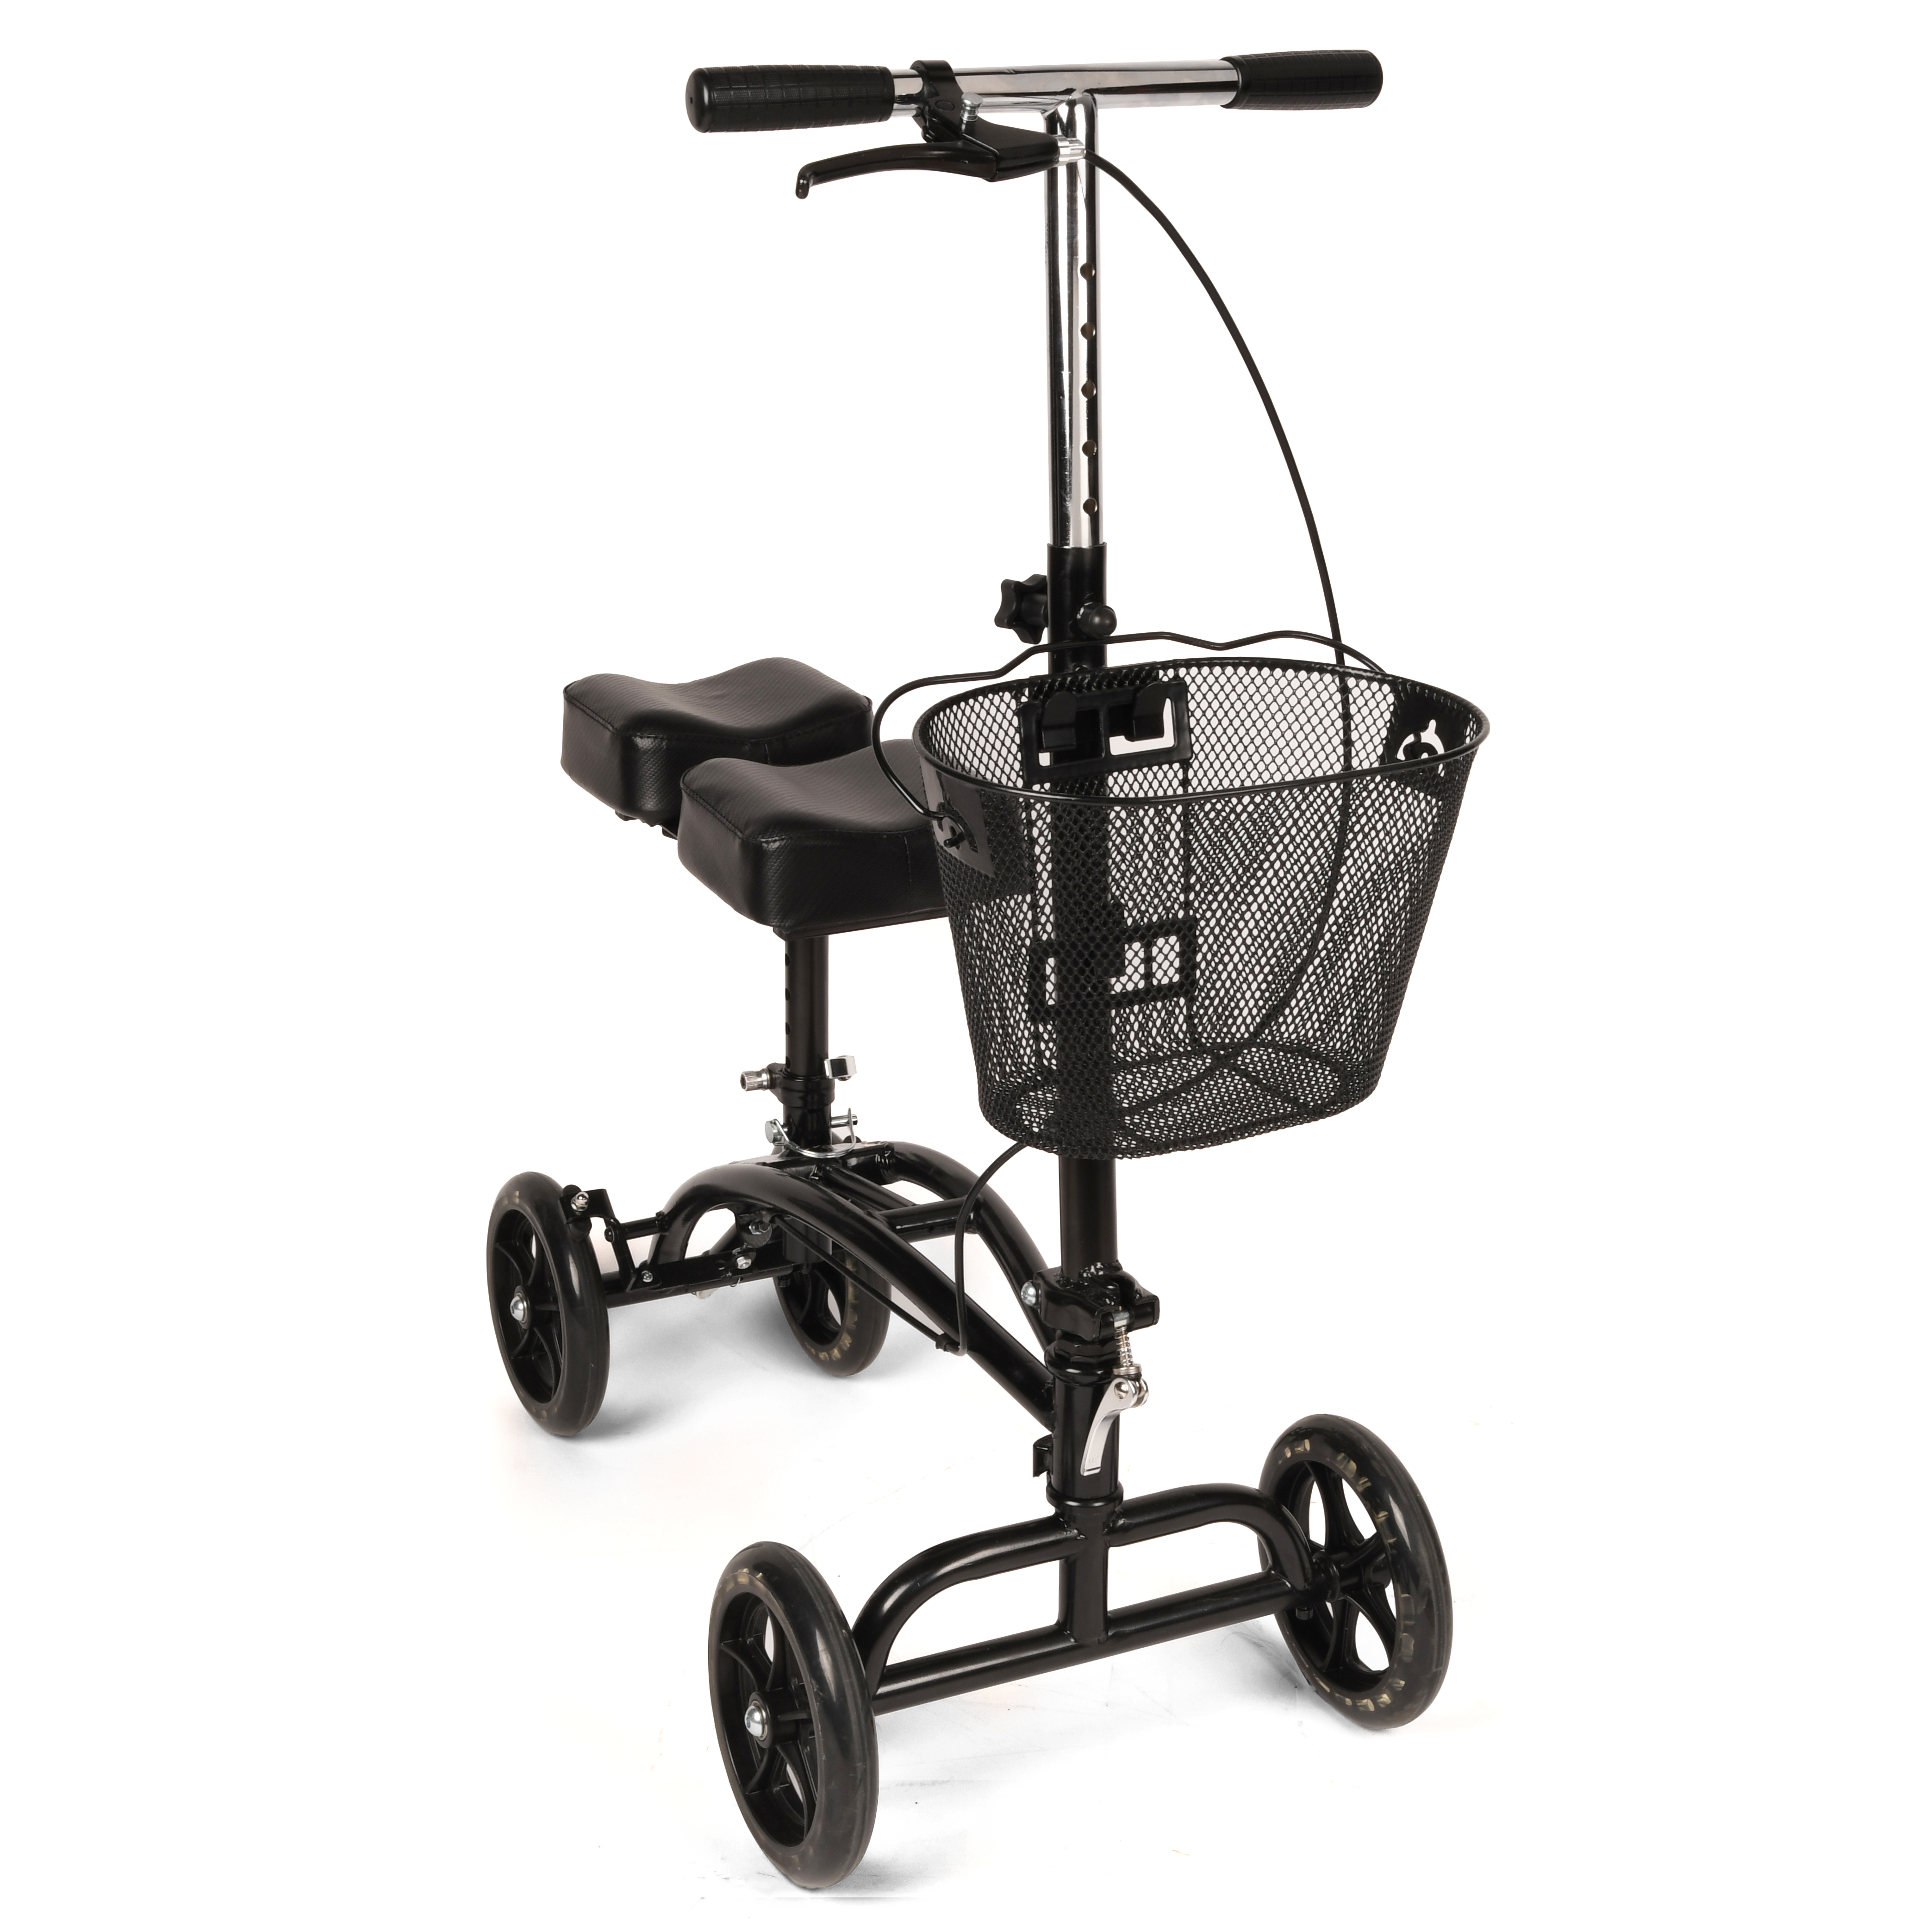 Equate Steerable Knee Walker Scooter